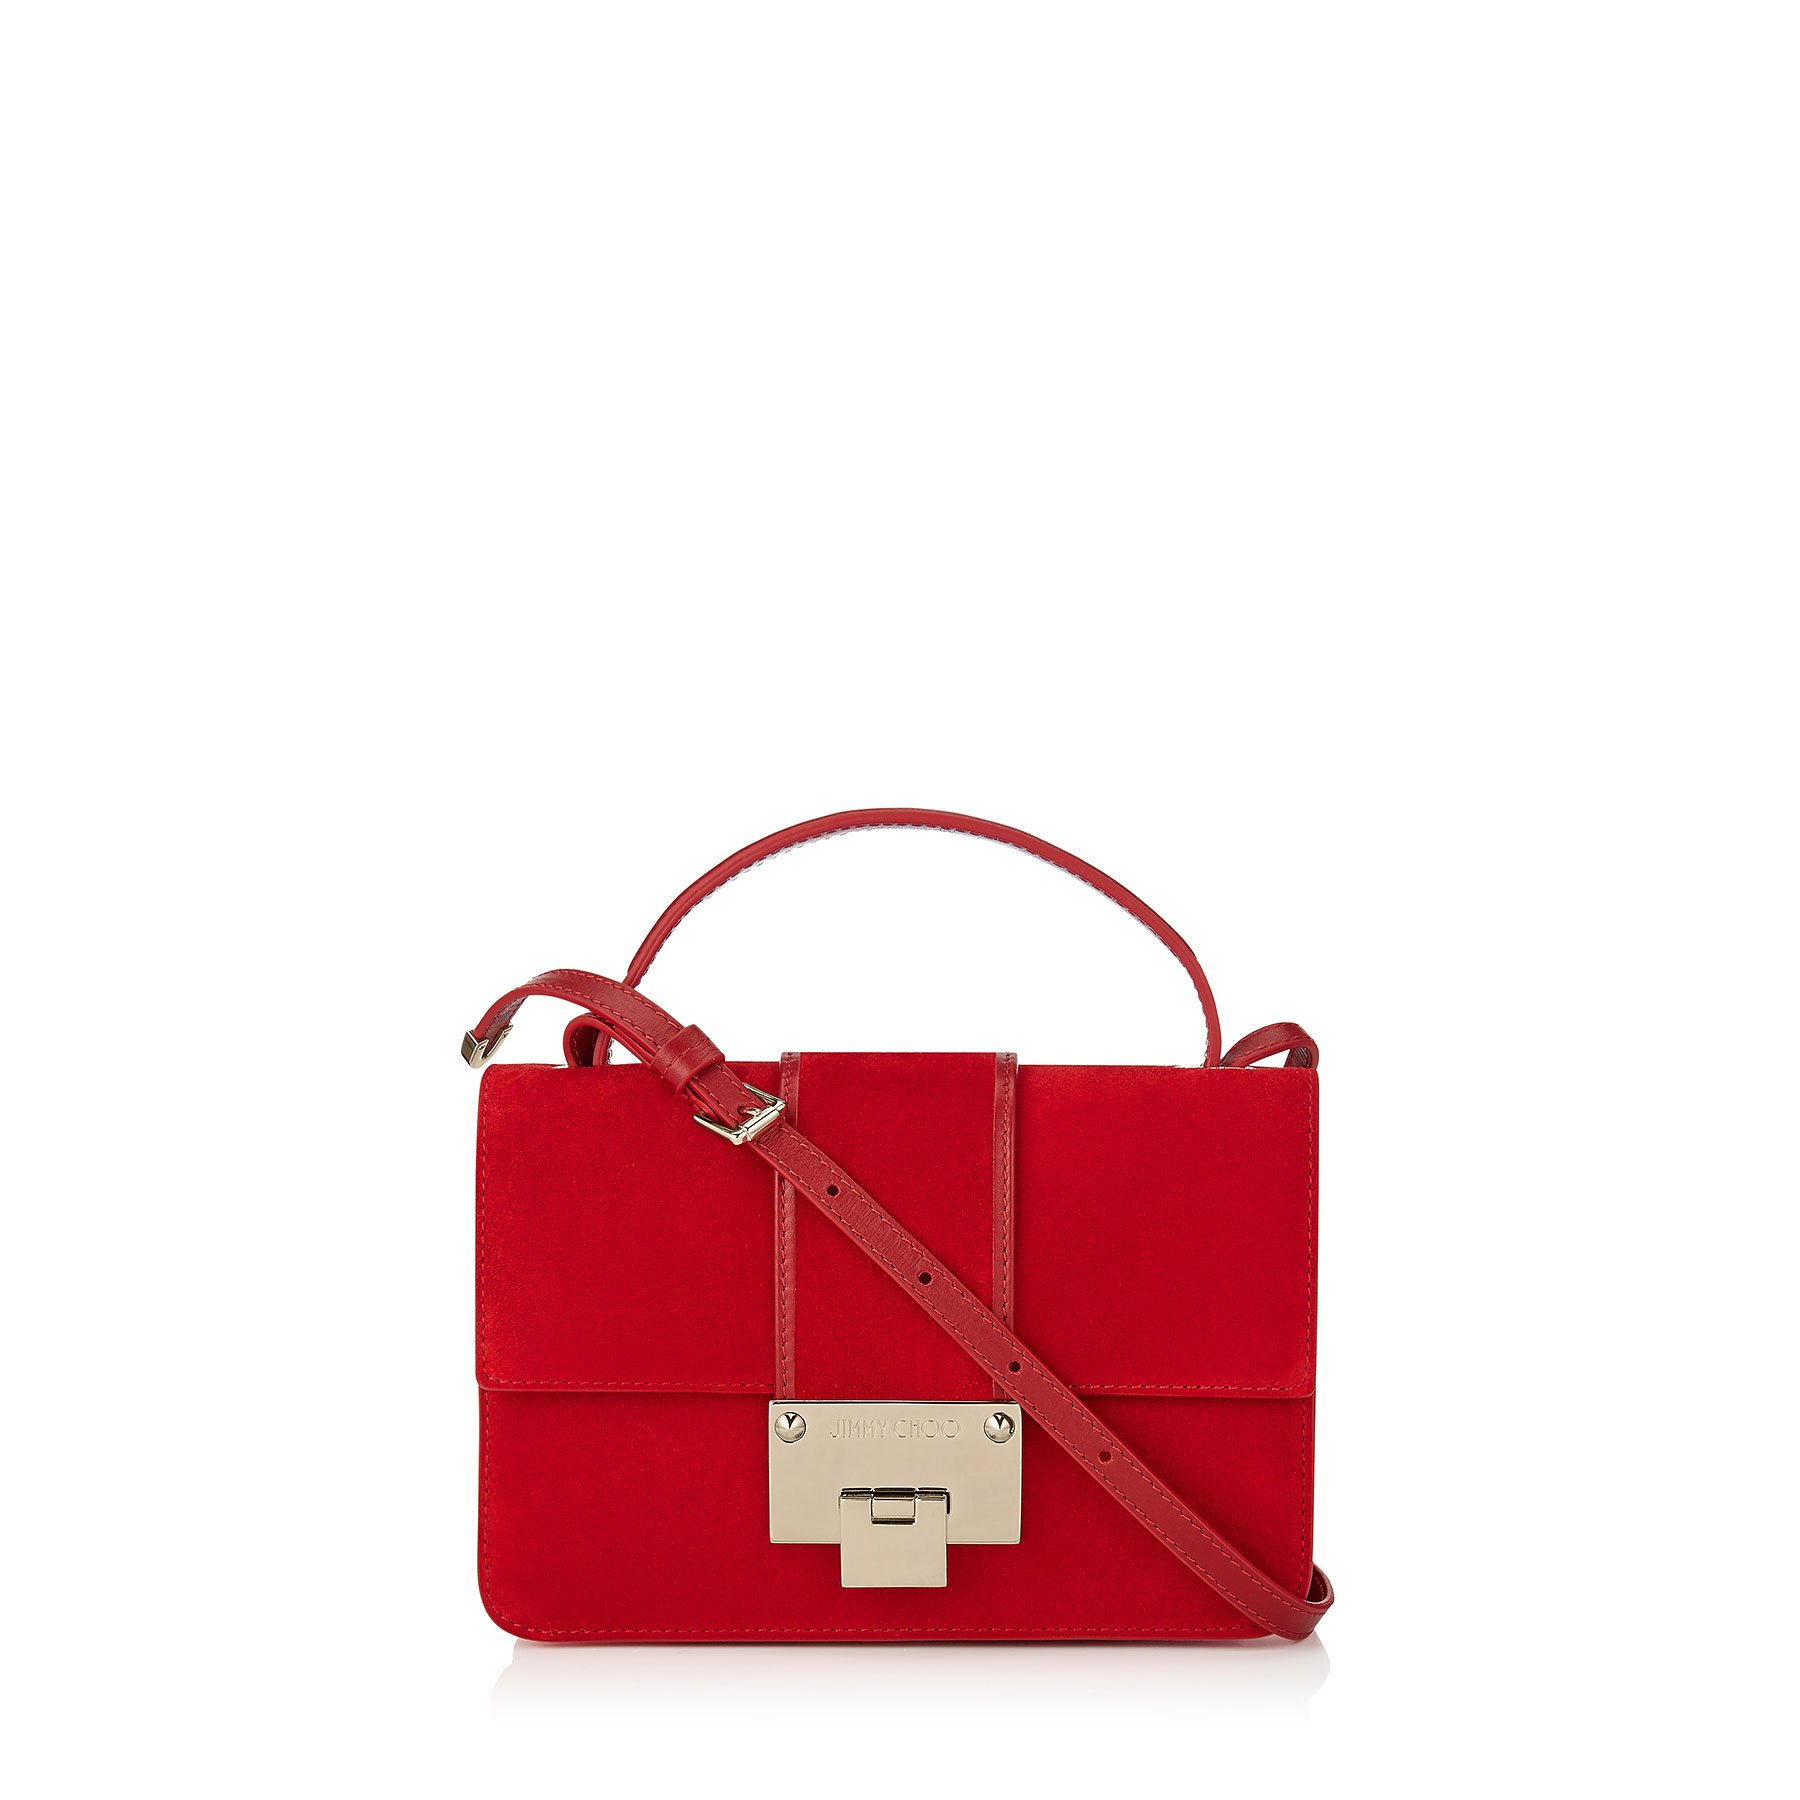 REBEL Red Suede Cross Body Bag